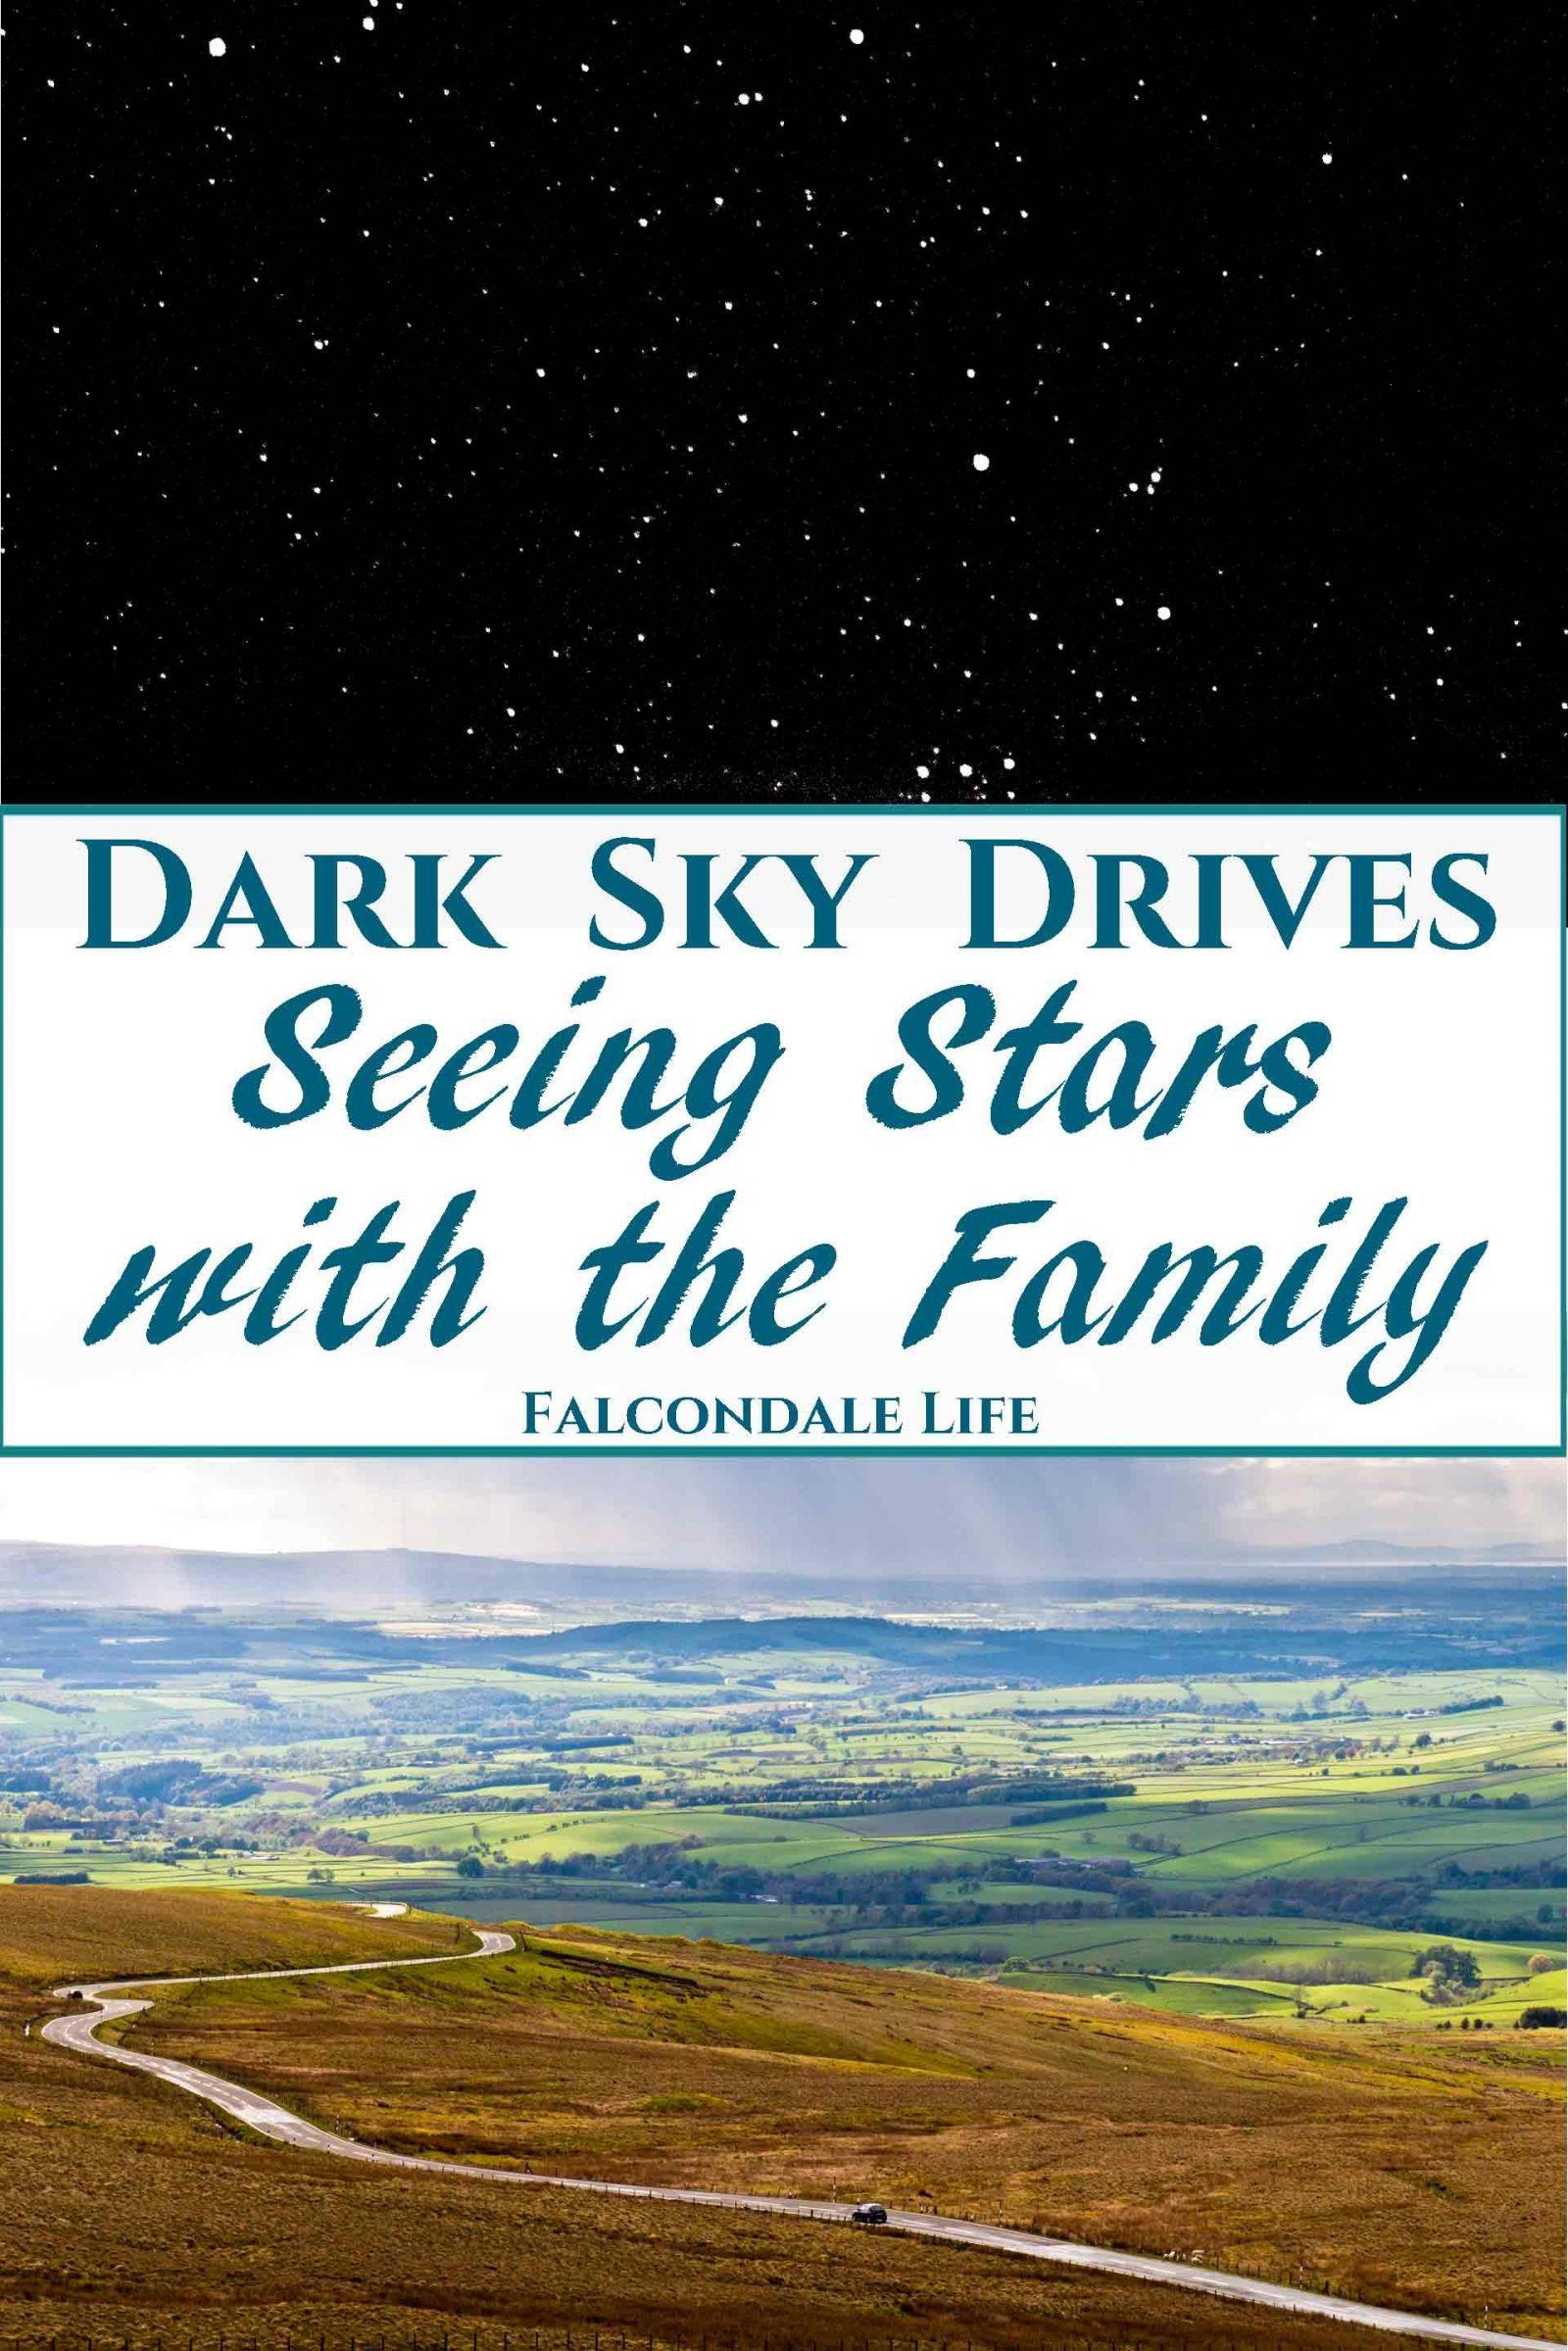 Dark Sky Drives - Seeing Stars with the Family on Falcondale Life blog. With older children a night time adventure to see the stars in a dark sky park is a great idea for a roadtrip. How to plan and what to expect in some of the best dark sky viewing areas. North Pennines AONB, Forest of Galloway and ambitions to visit the dark sky park of county Kerry.